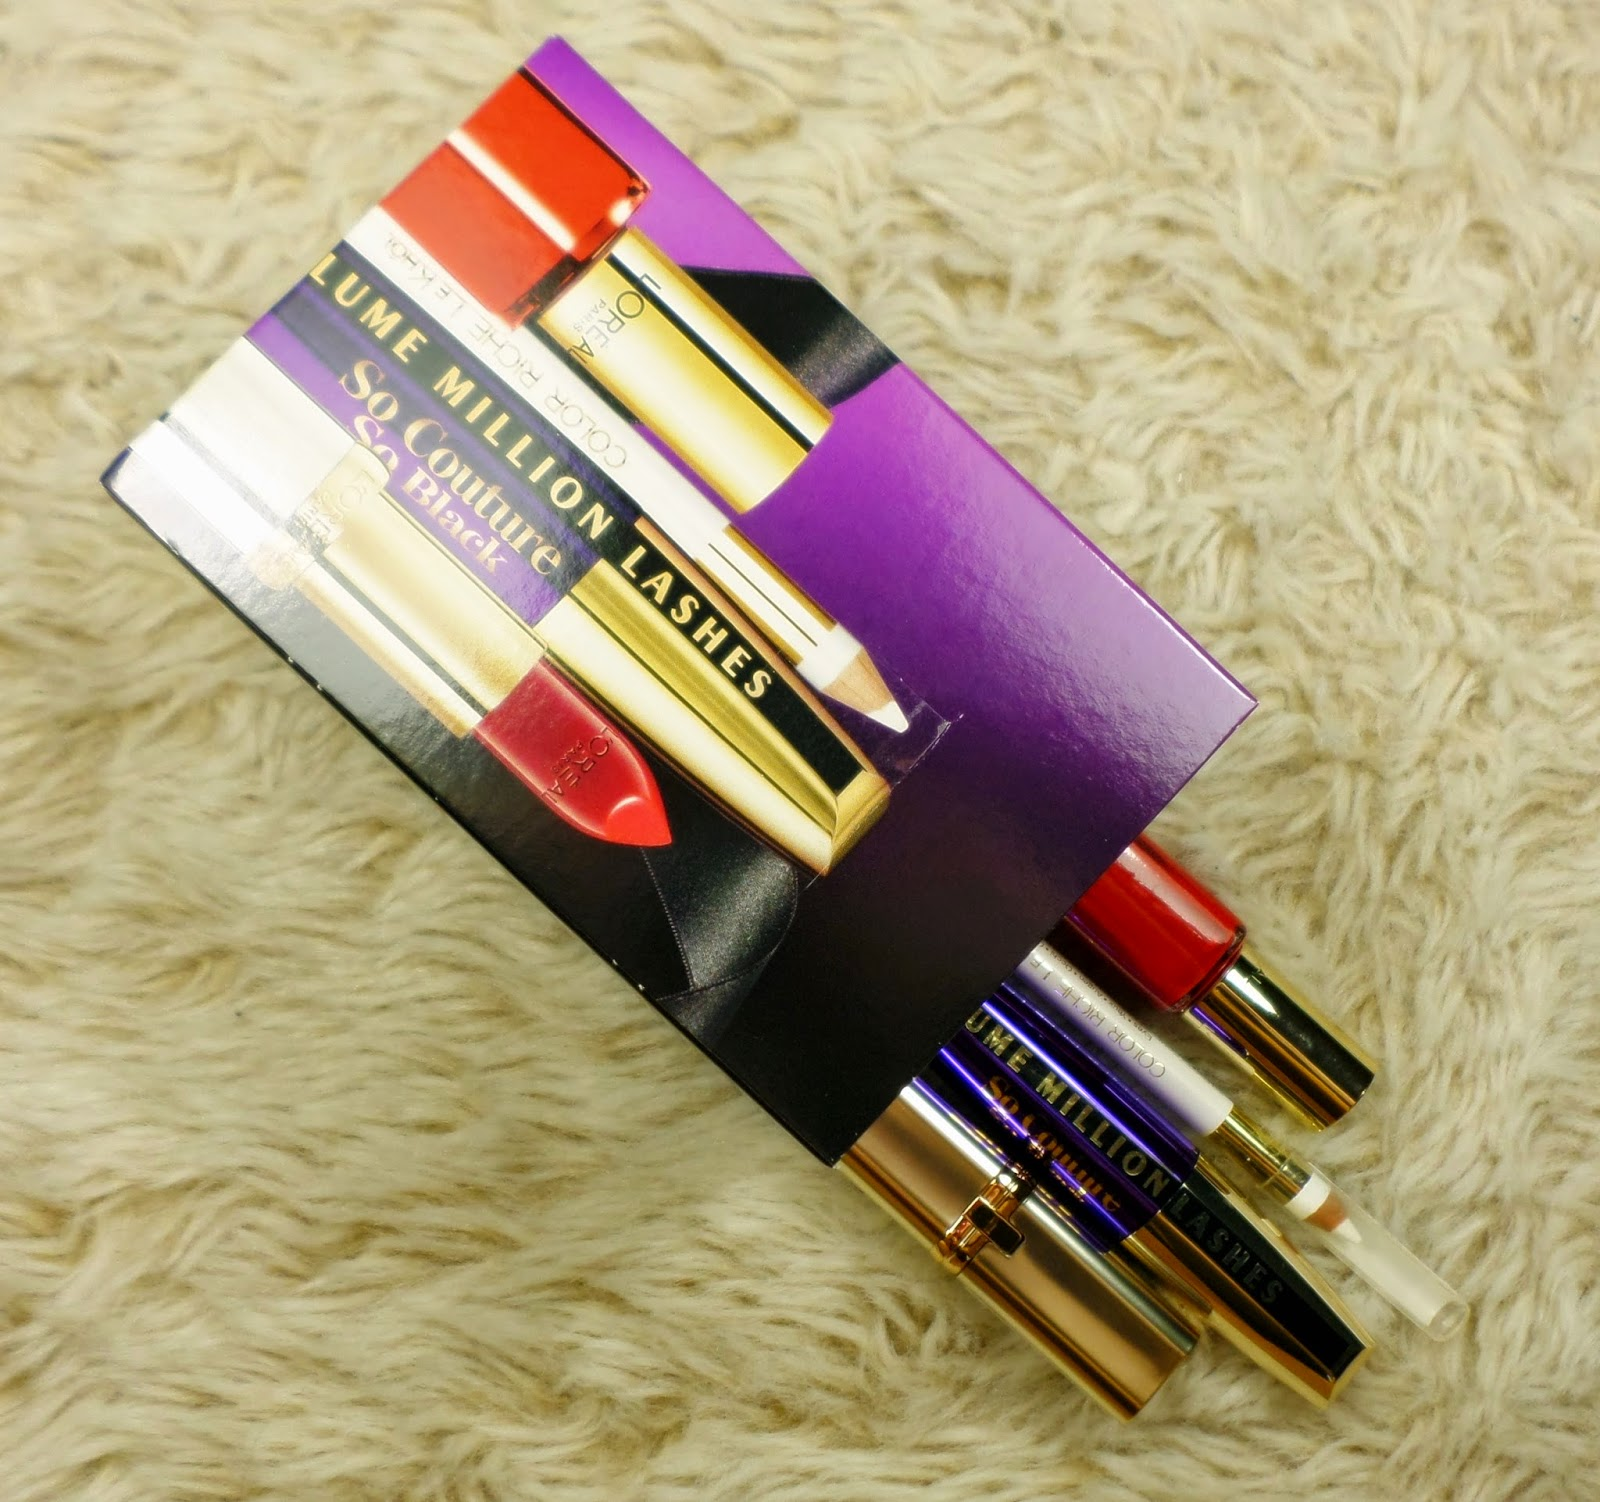 L'Oreal So Couture Free Gift With Purchase at Boots